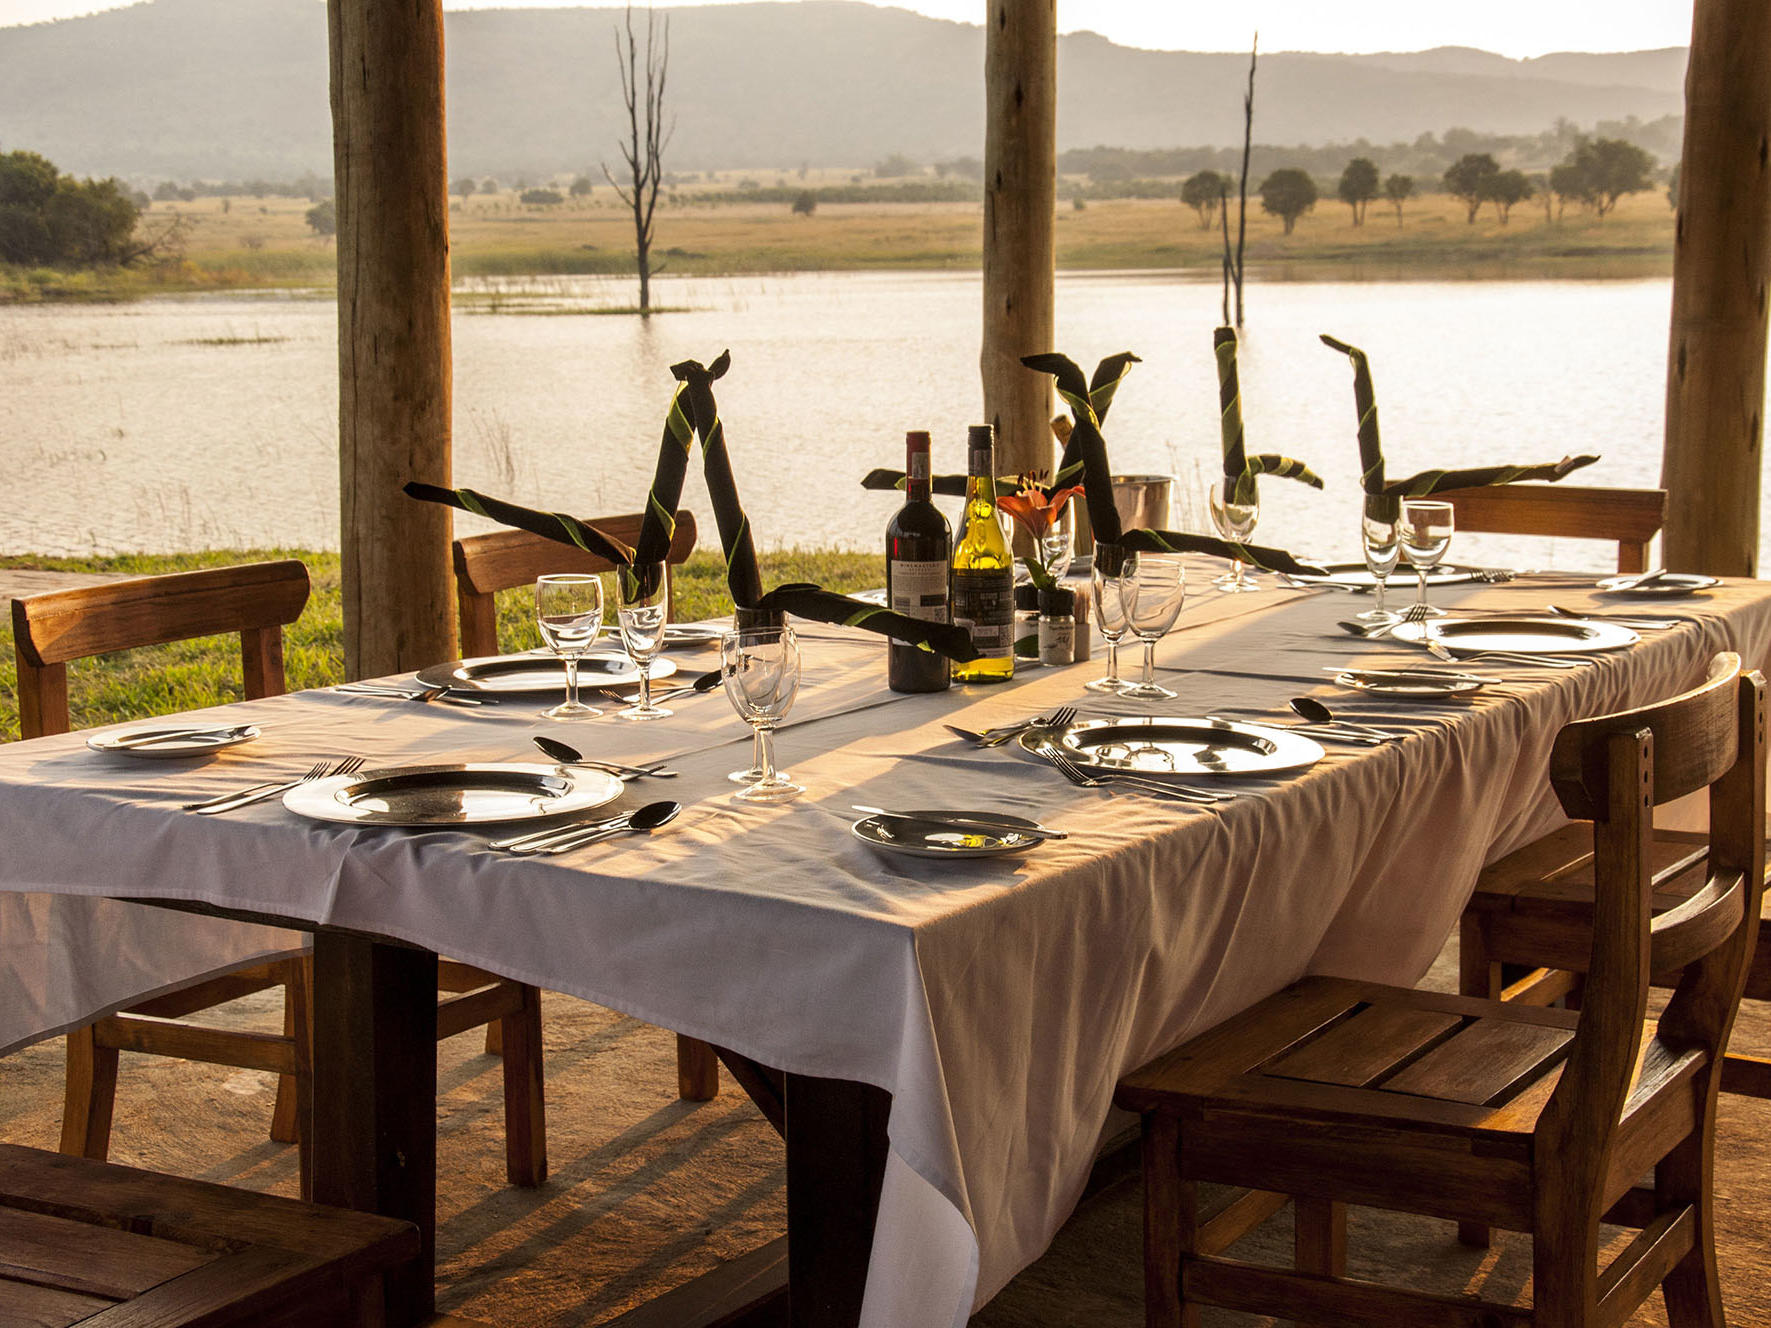 Dining table with nice natural scenery